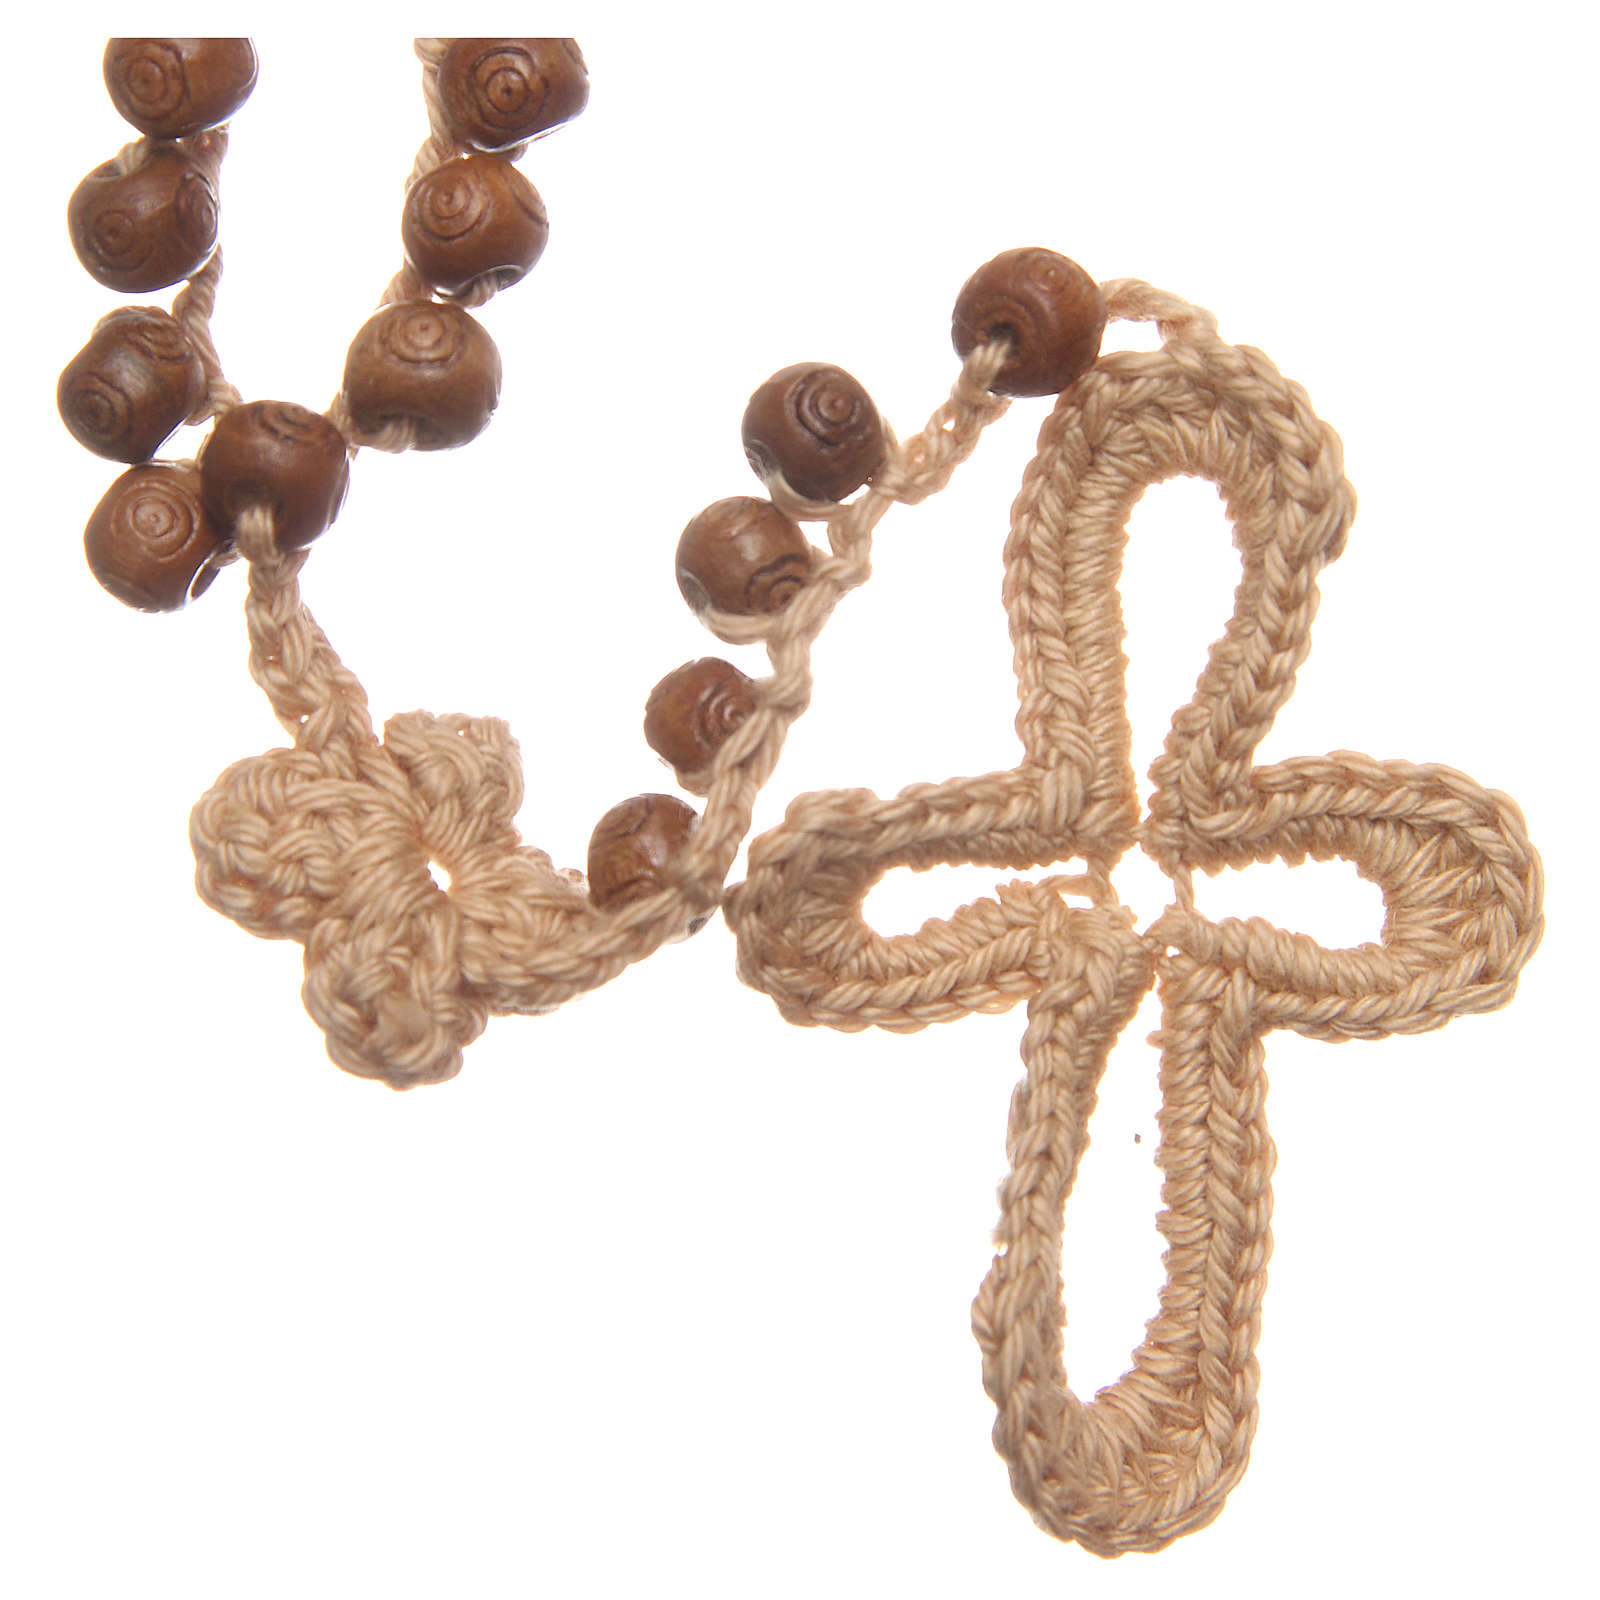 Medjugorje rosary in wood with grains measuring 9mm 4